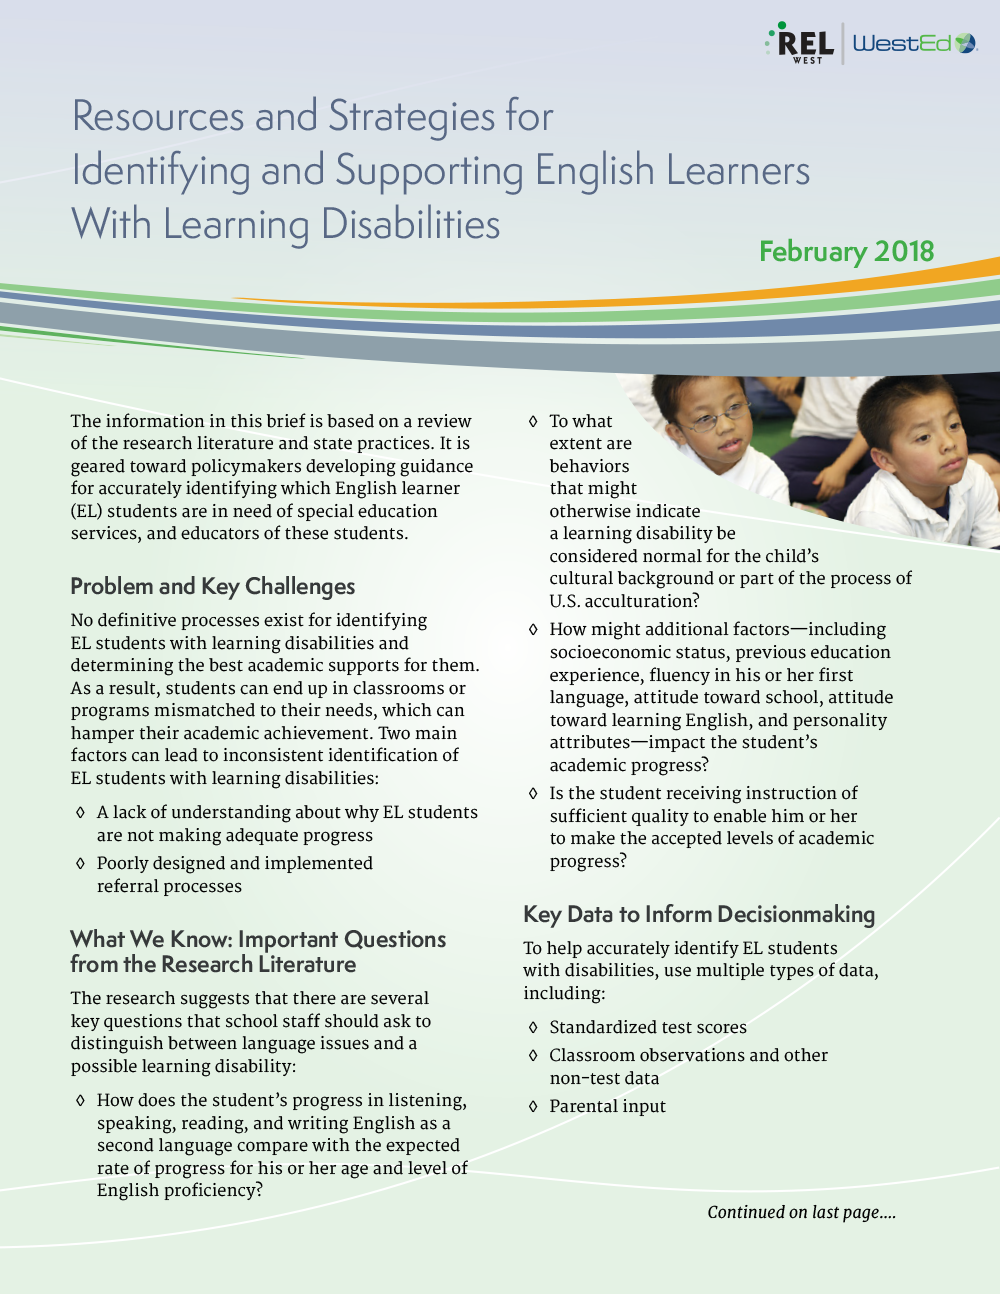 The State Of Learning Disabilities >> Identify English Learners With Learning Disabilities Wested